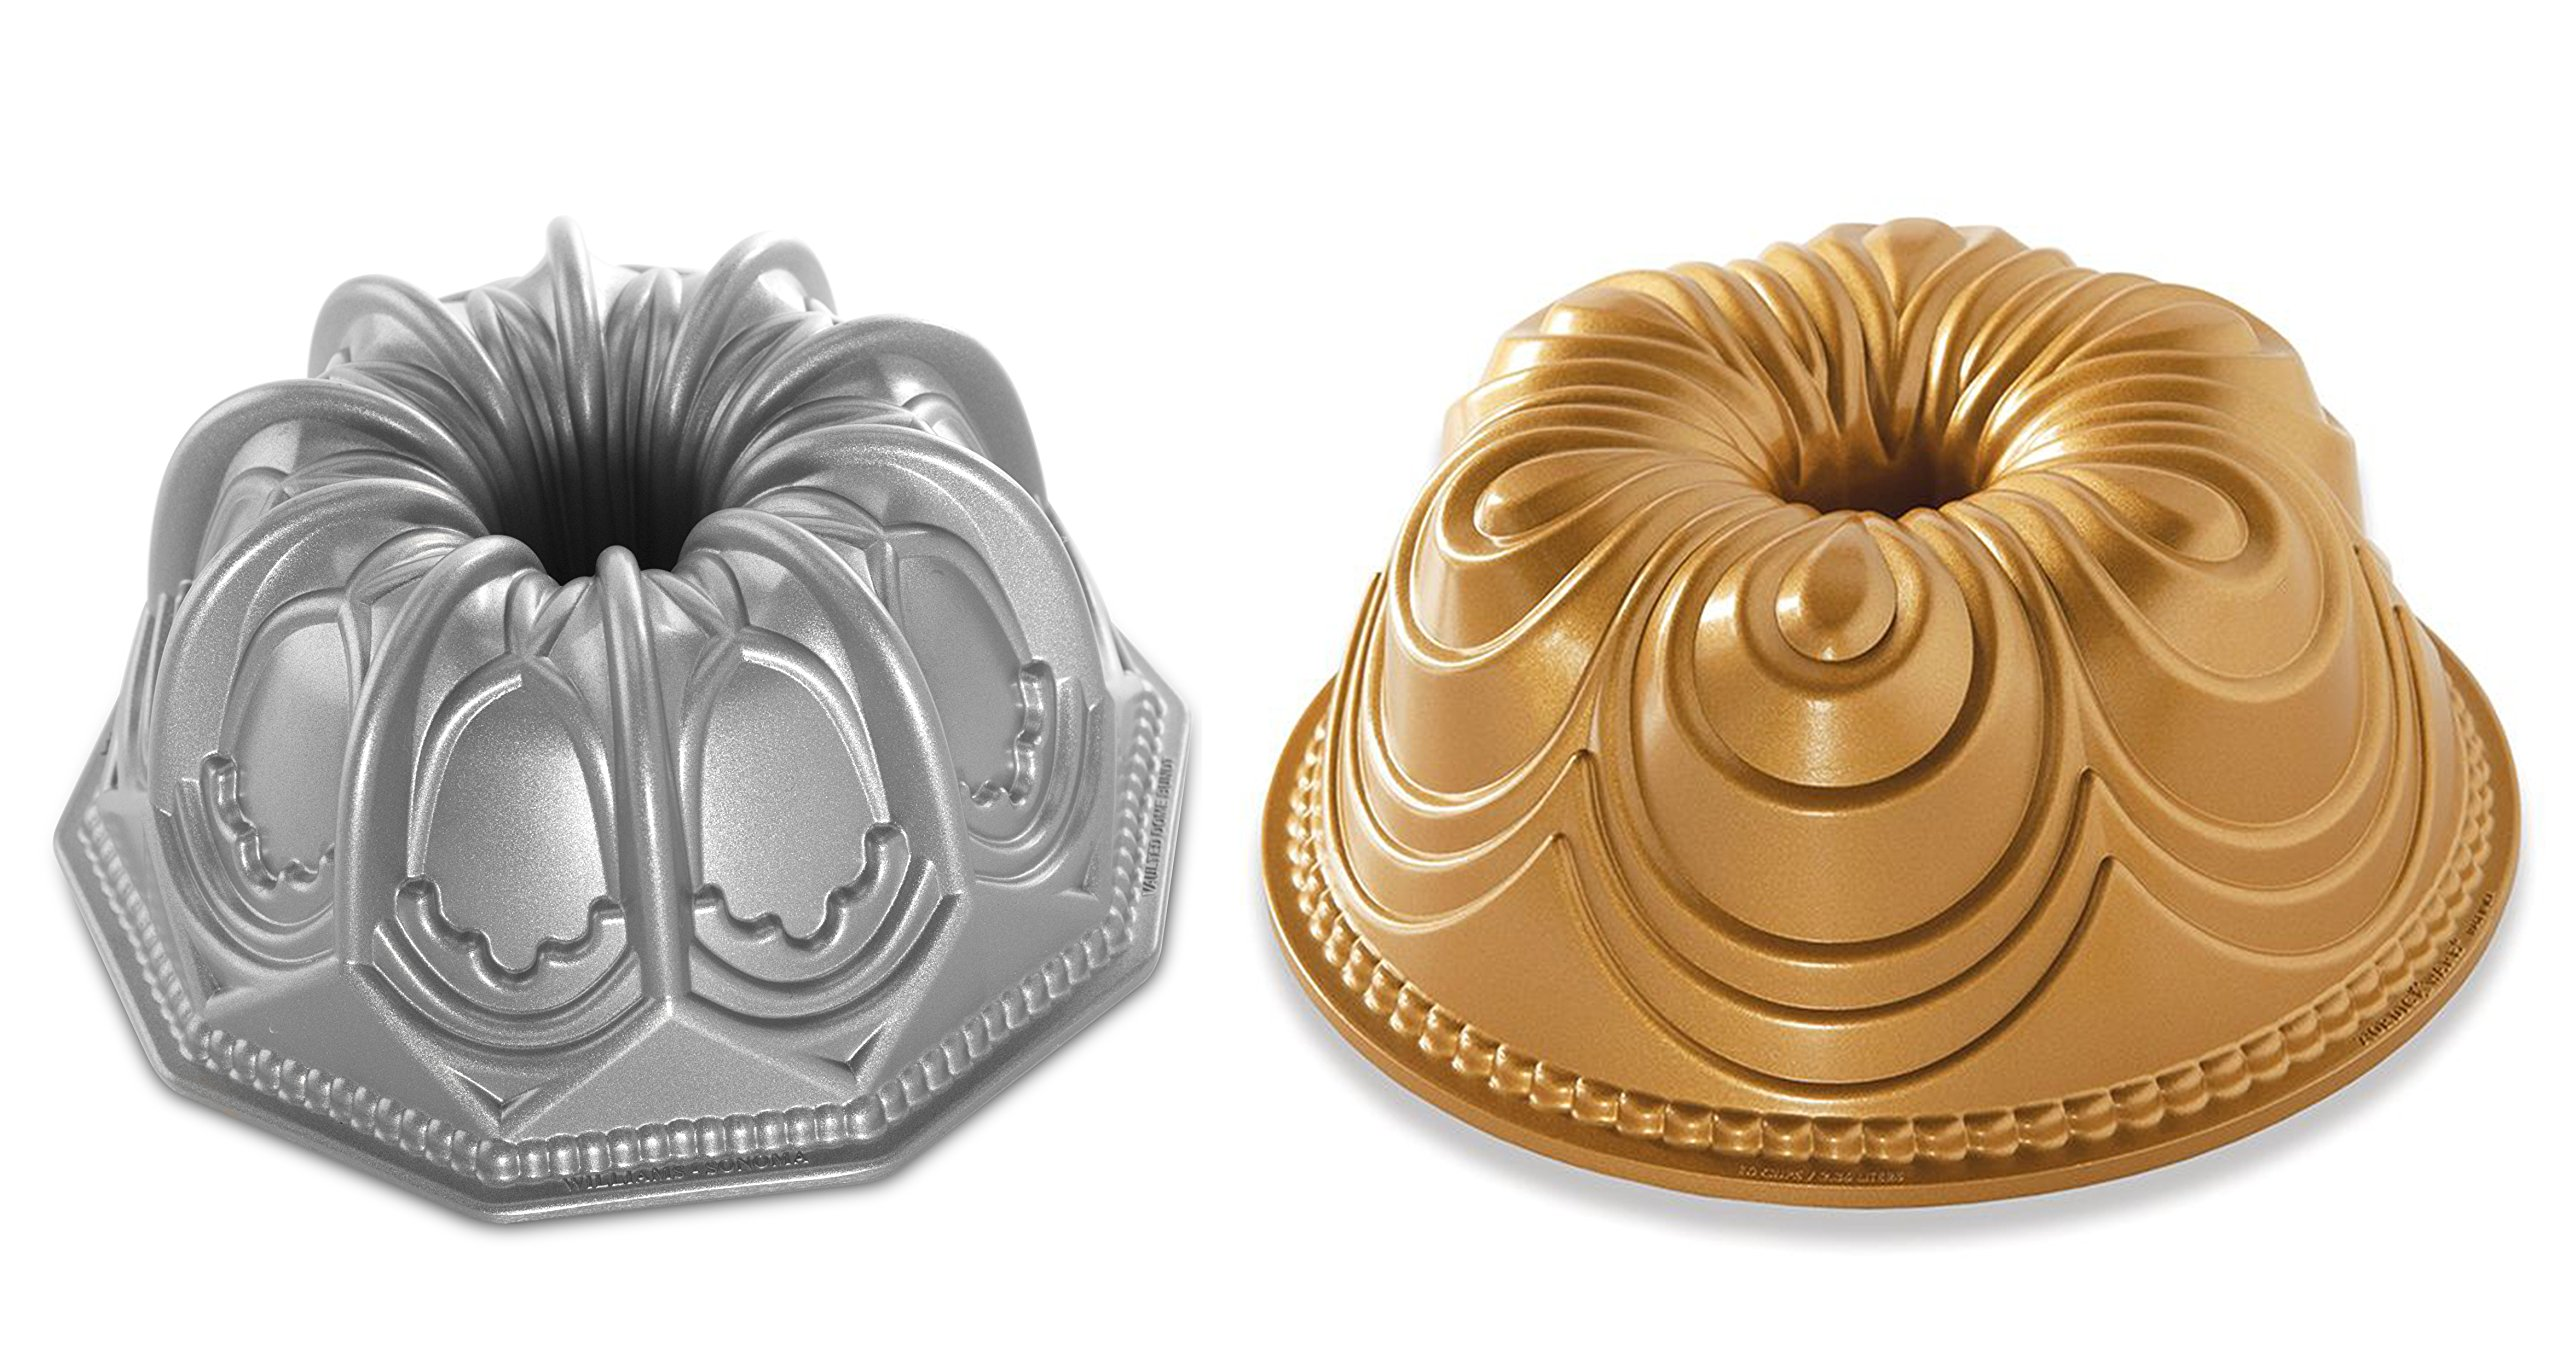 Set of 2 Nordic Ware Cake Chiffon and Vaulted Cathedral Bundt Pans